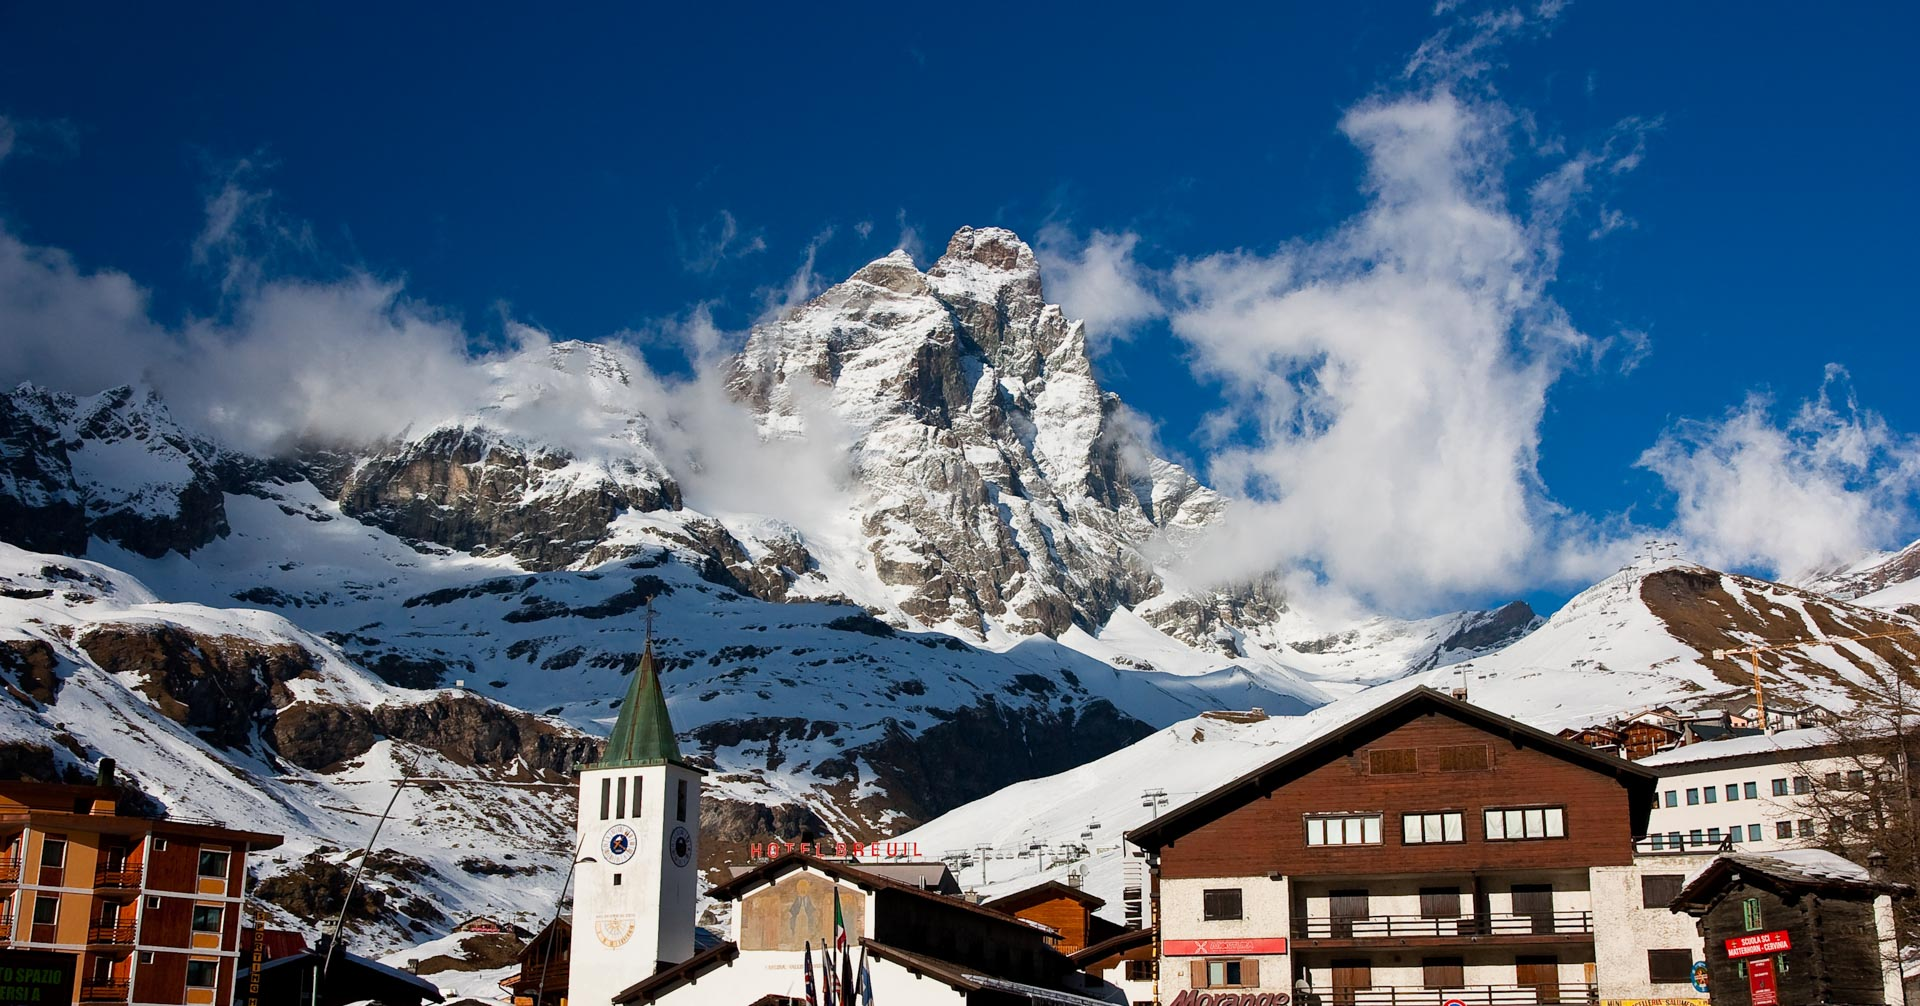 Mountains dominate the skyline of the picturesque, snow-covered Italian village of Cervinia